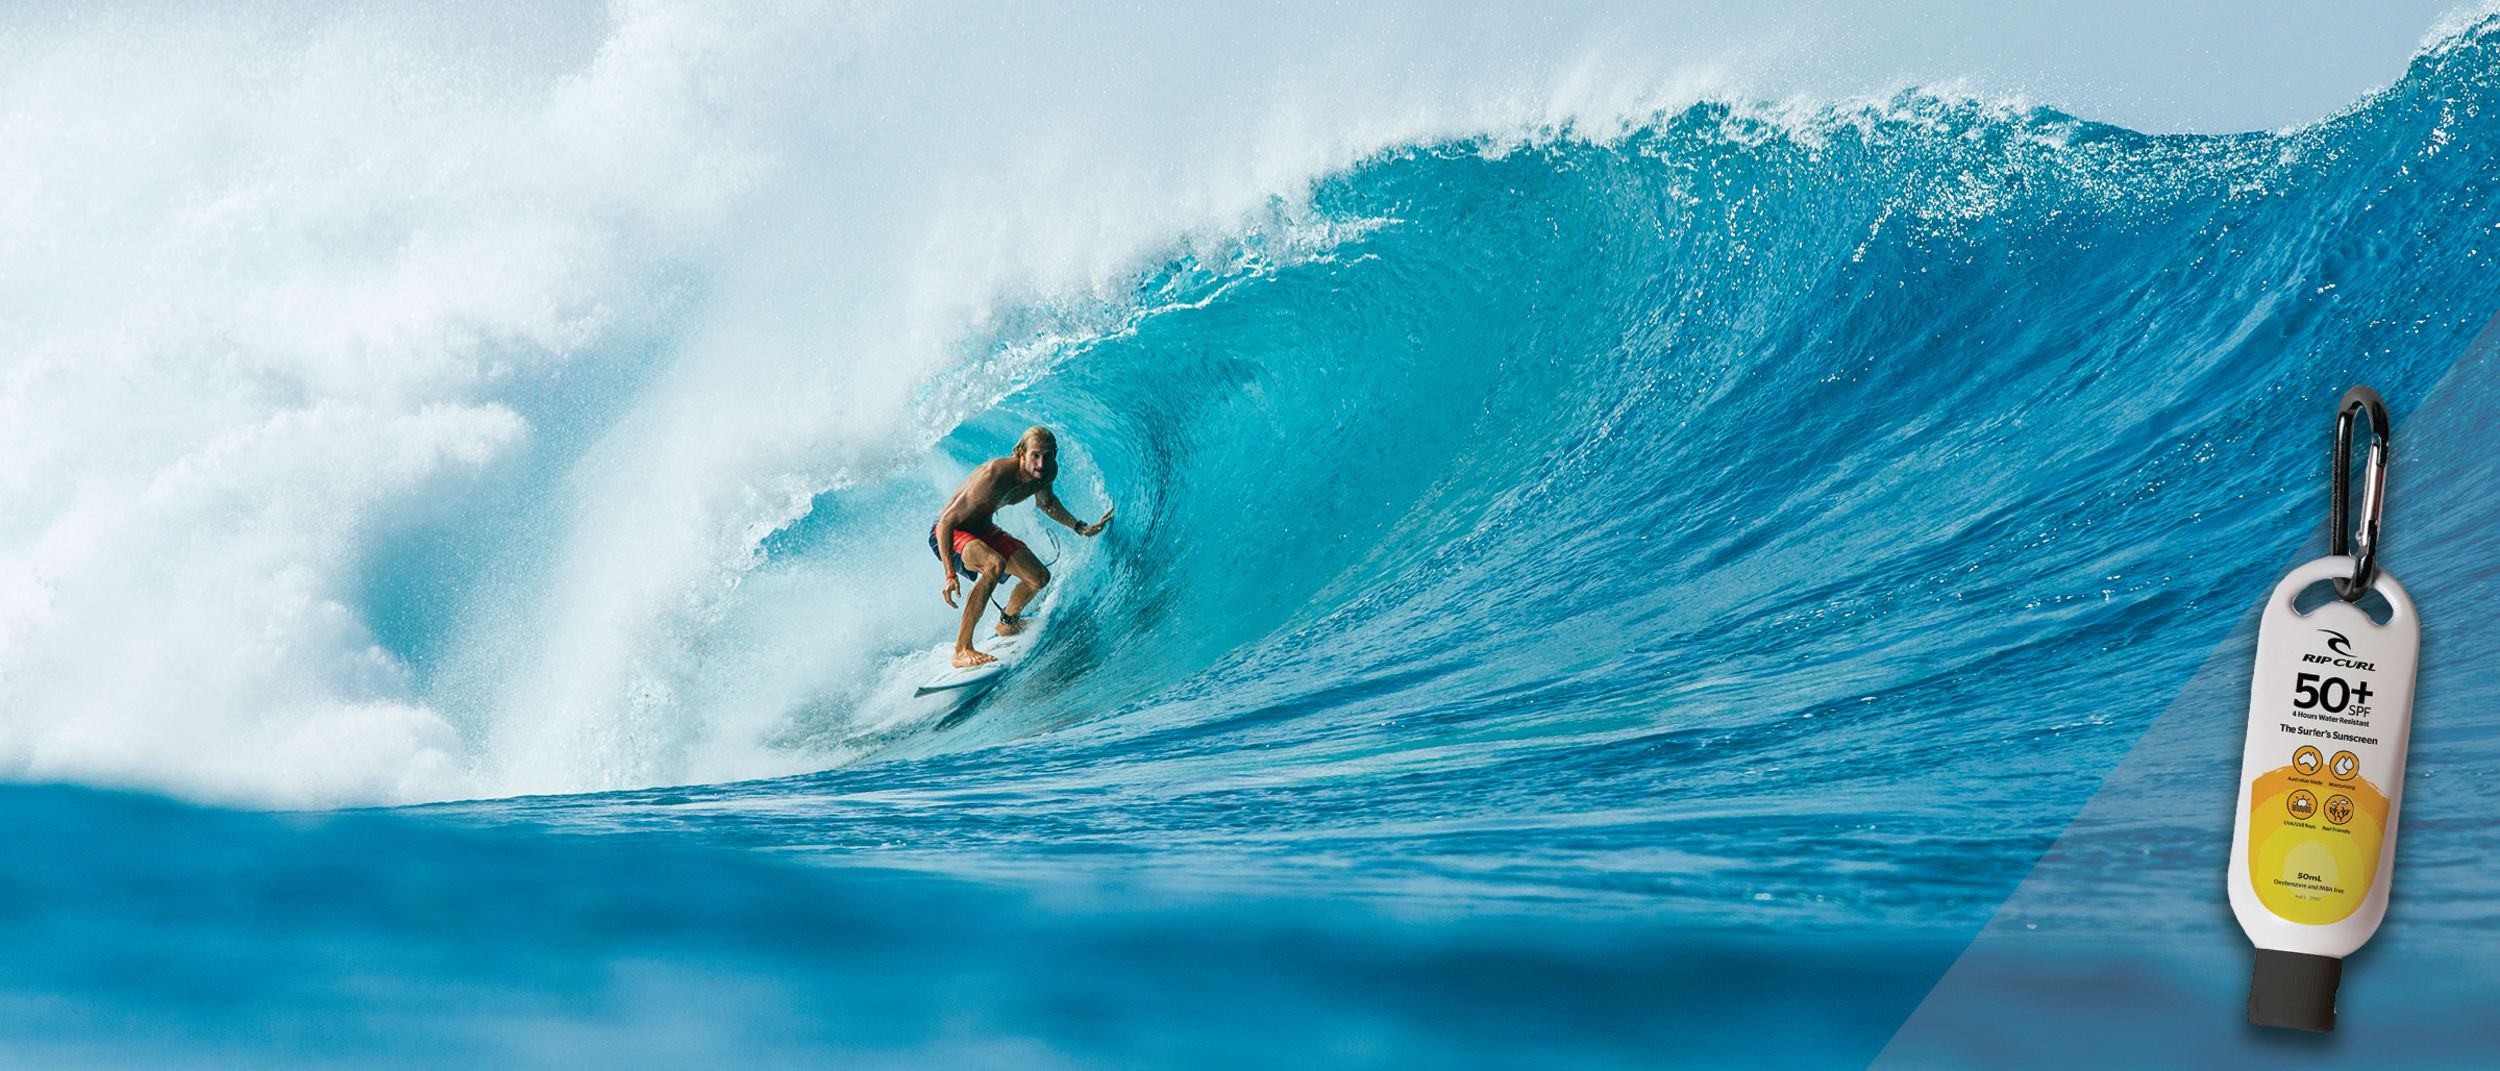 Ozmosis: $5 Rip Curl sunscreen